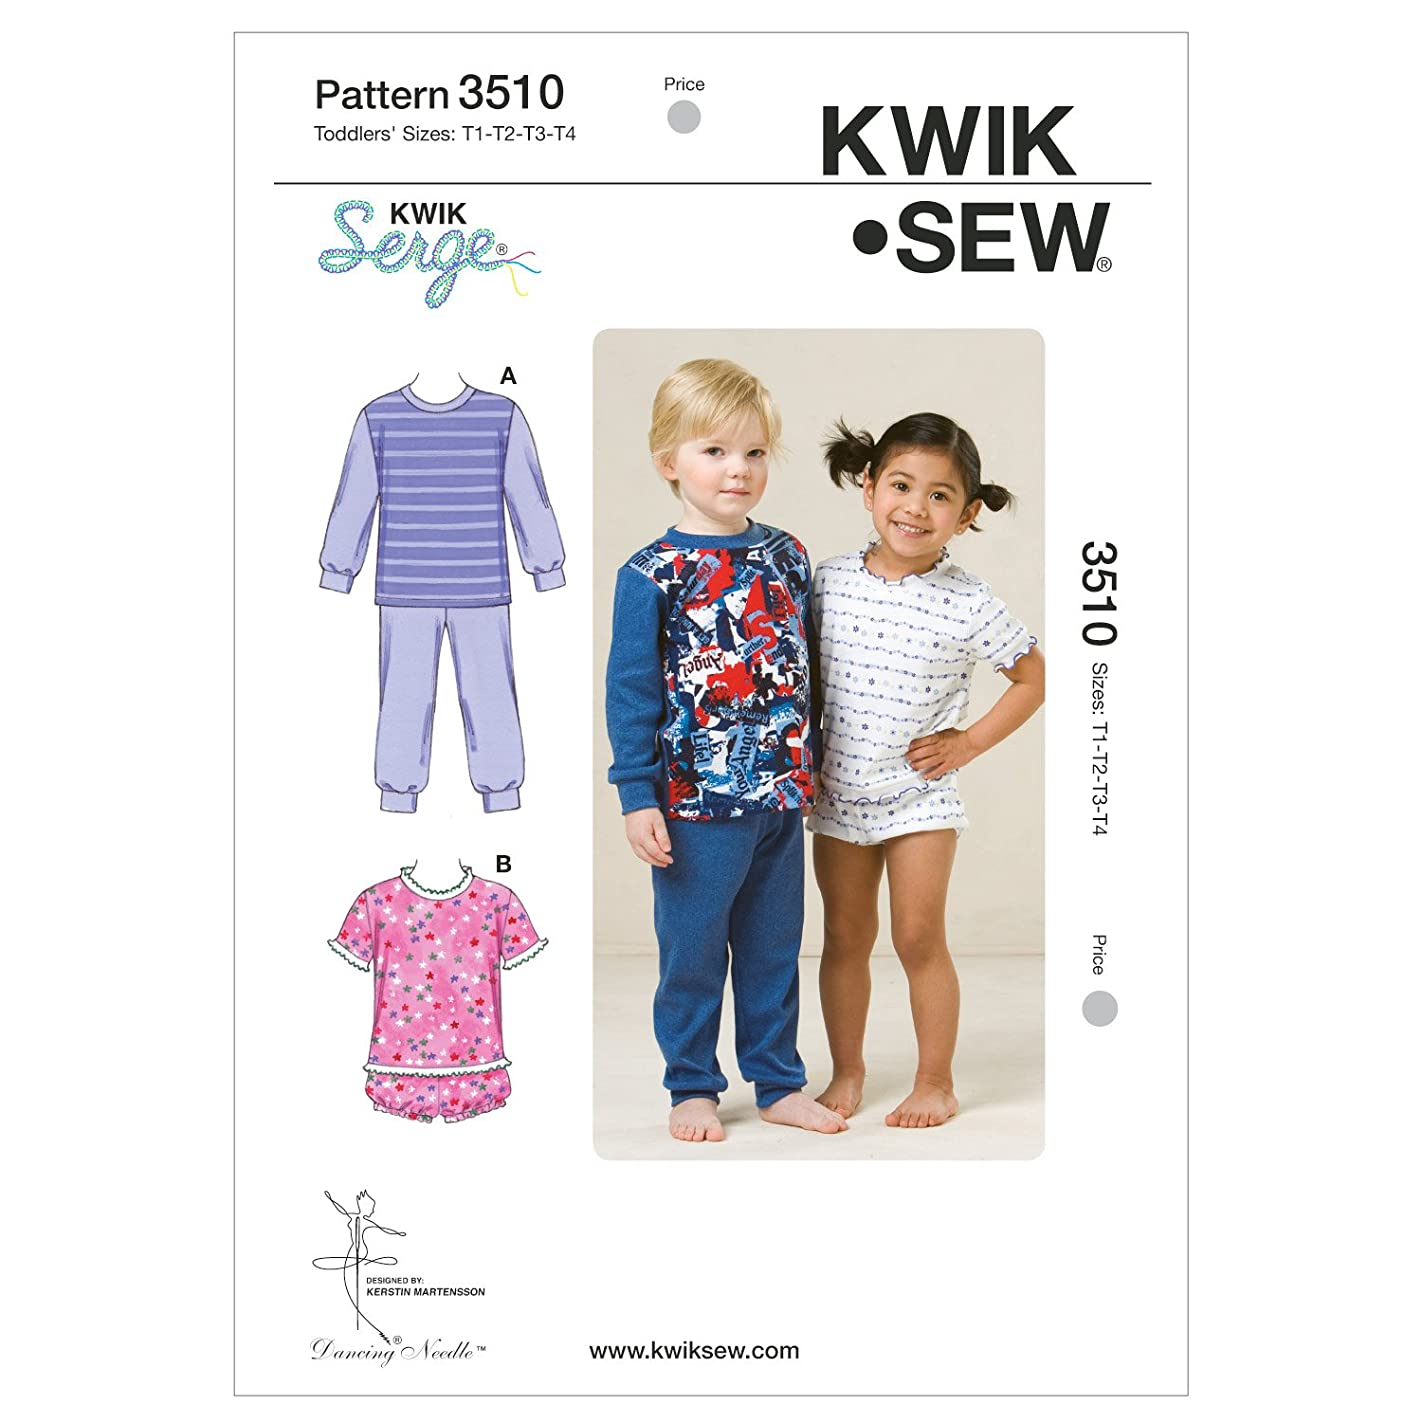 KWIK-SEW PATTERNS K3510OSZ Pajamas Sewing Pattern, Size T1-T2-T3-T4 b62307196010